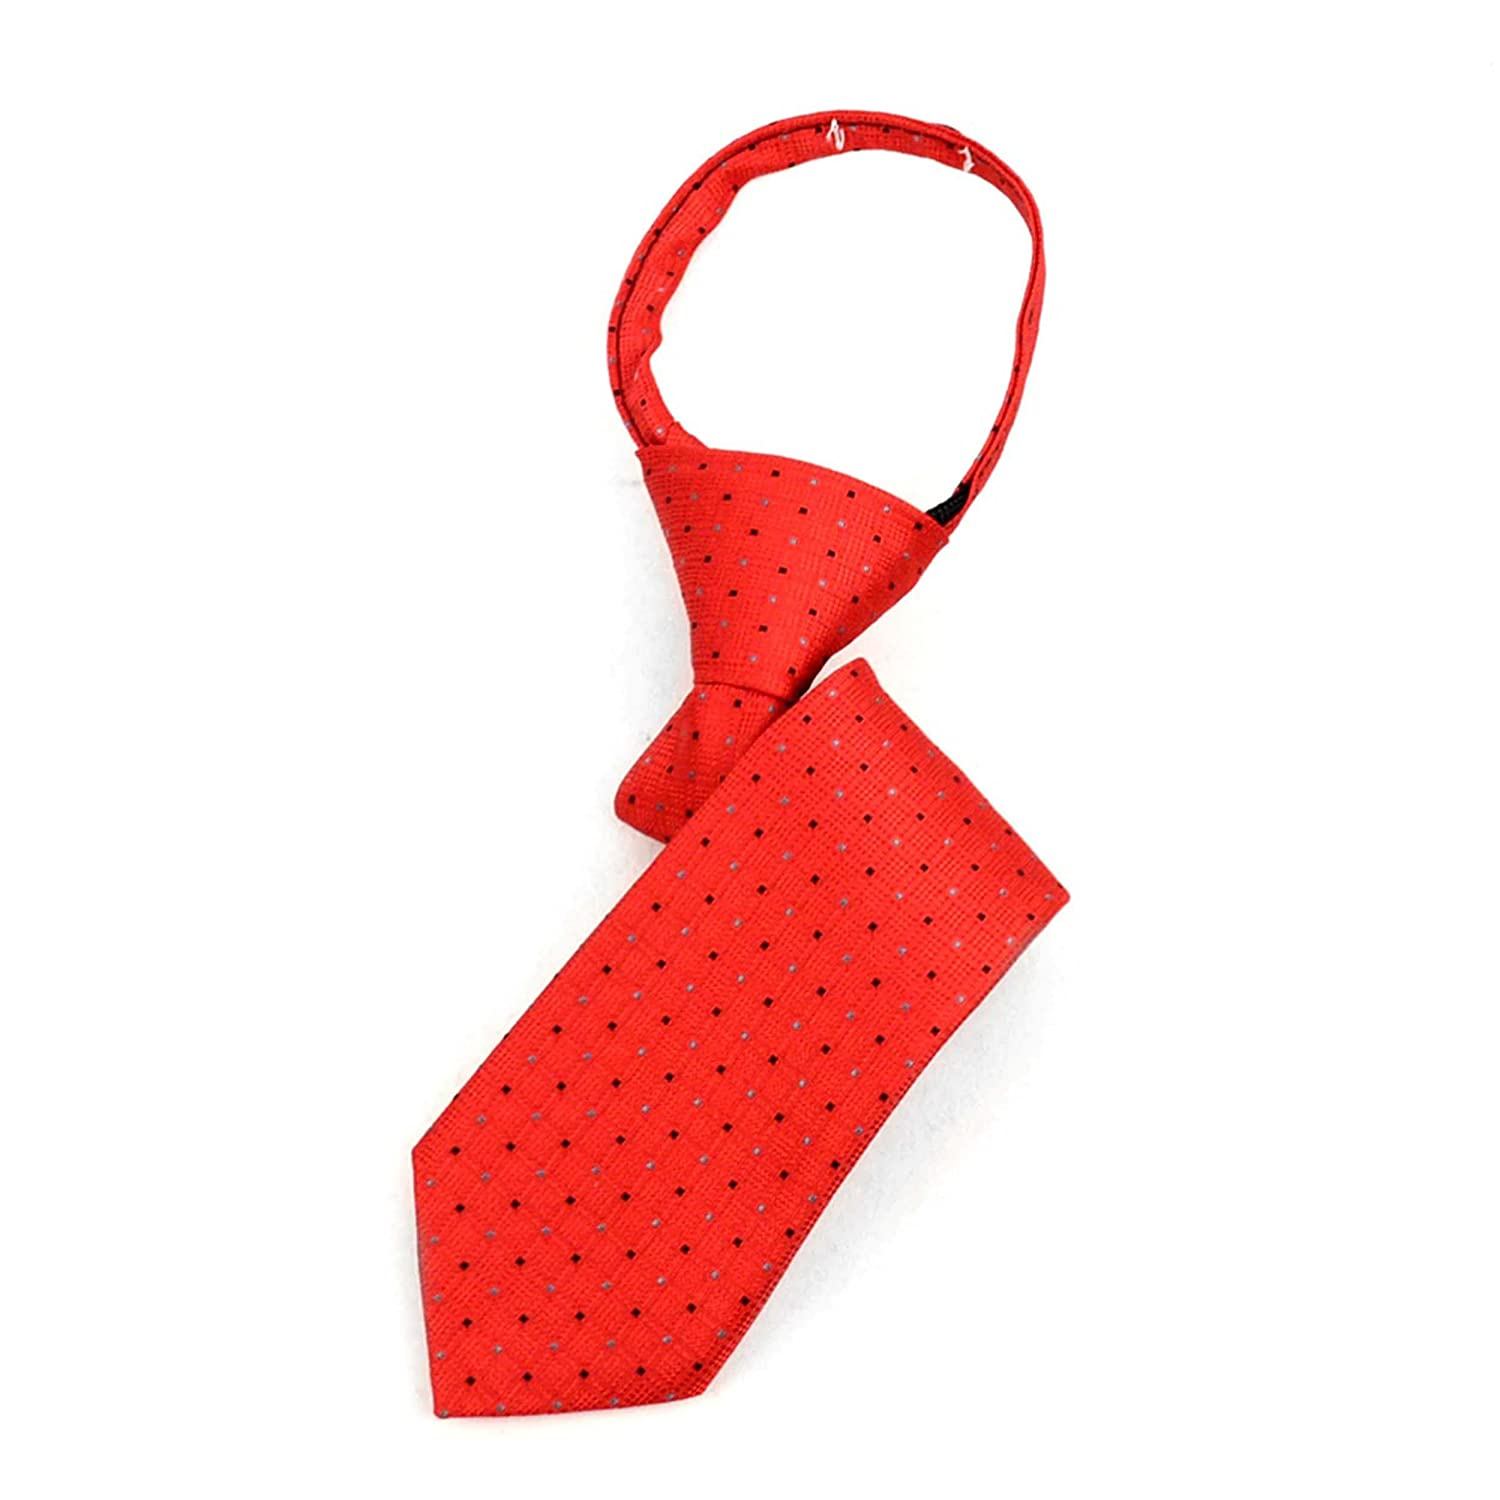 Boxed-Gifts Boys 11 Microfiber Woven Red Dotted Zipper Tie 11